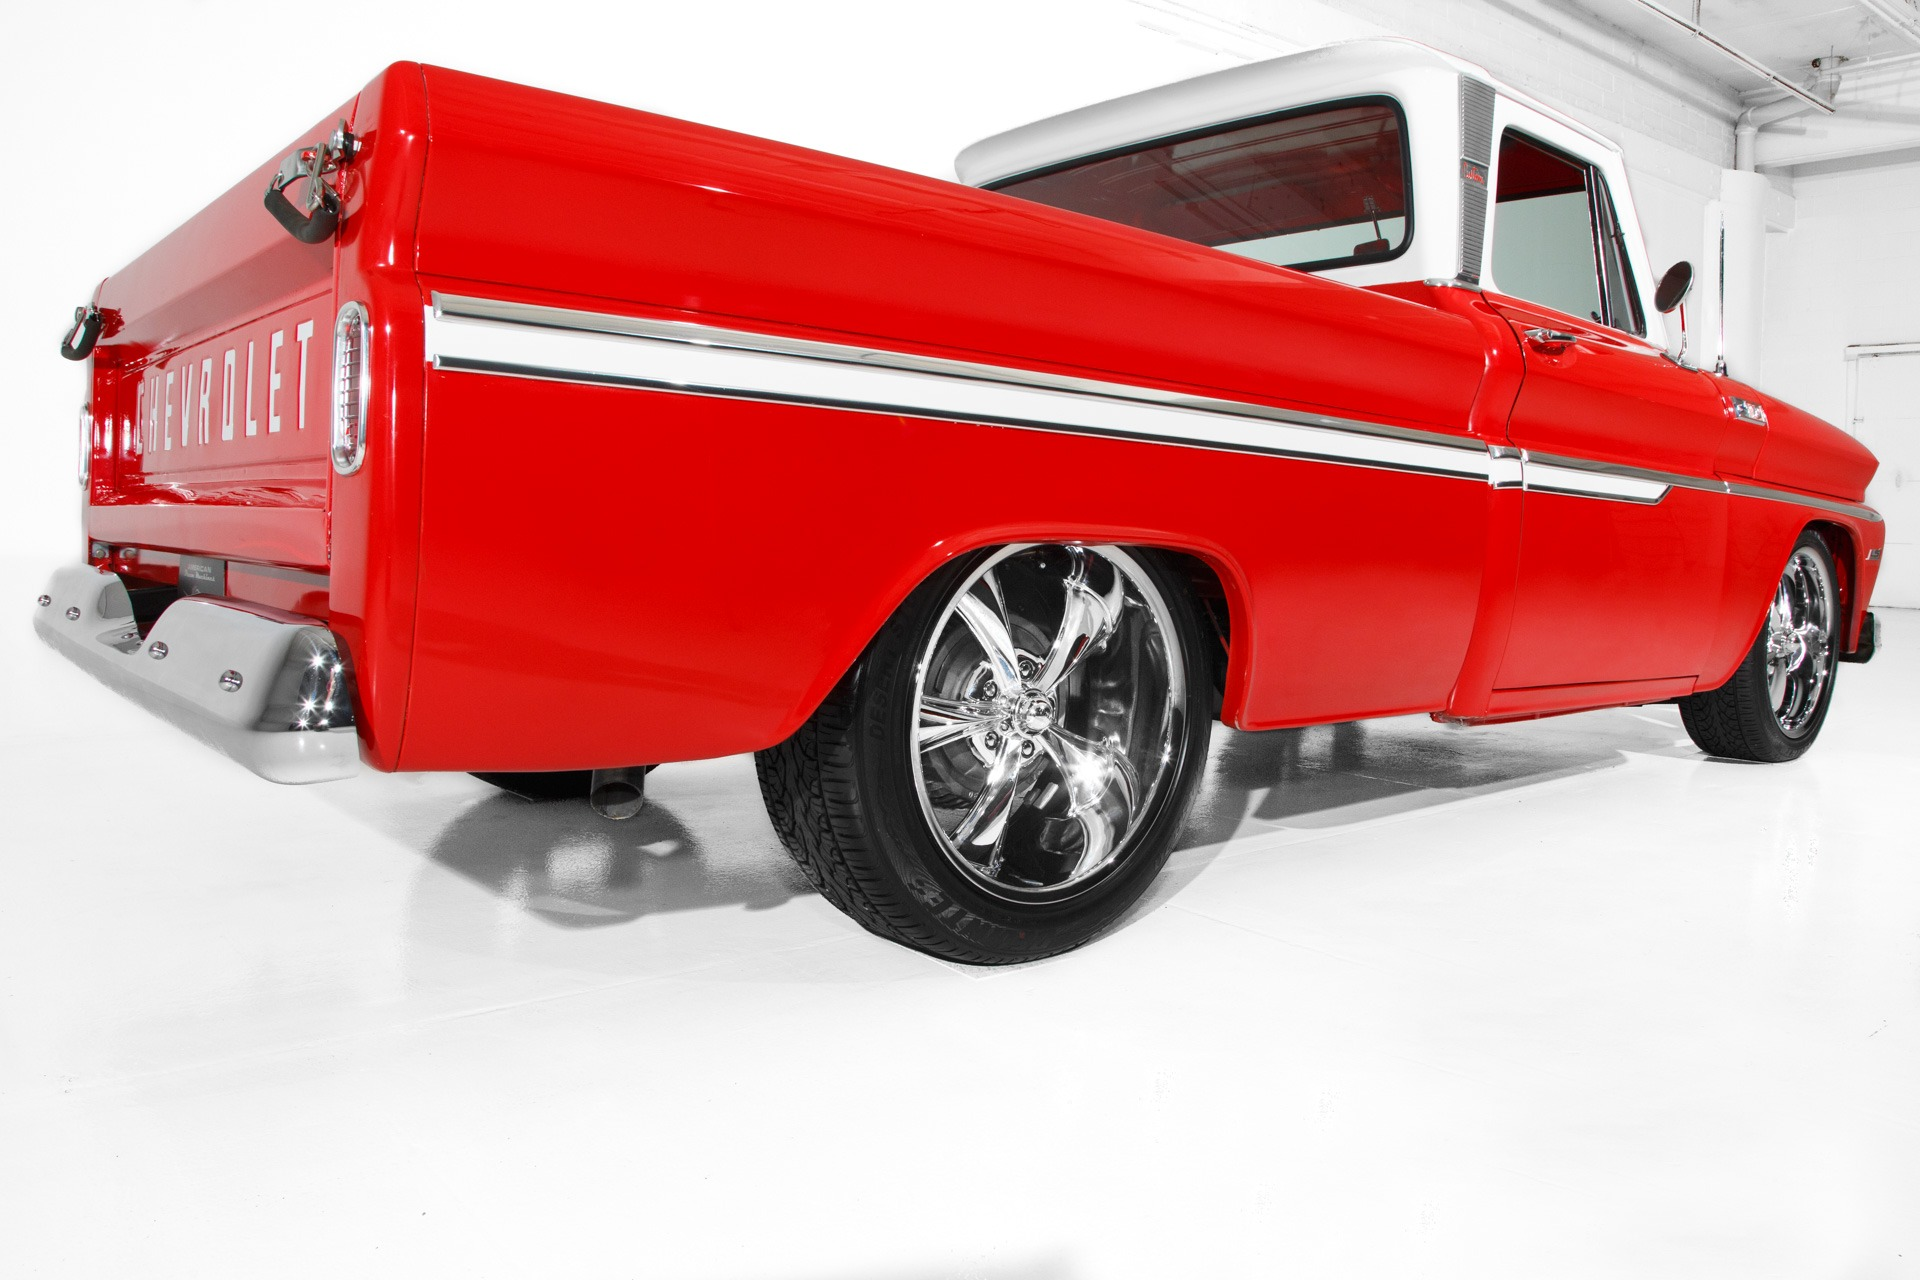 For Sale Used 1965 Chevrolet Pickup Red C10 frame-Off LS1 Auto | American Dream Machines Des Moines IA 50309